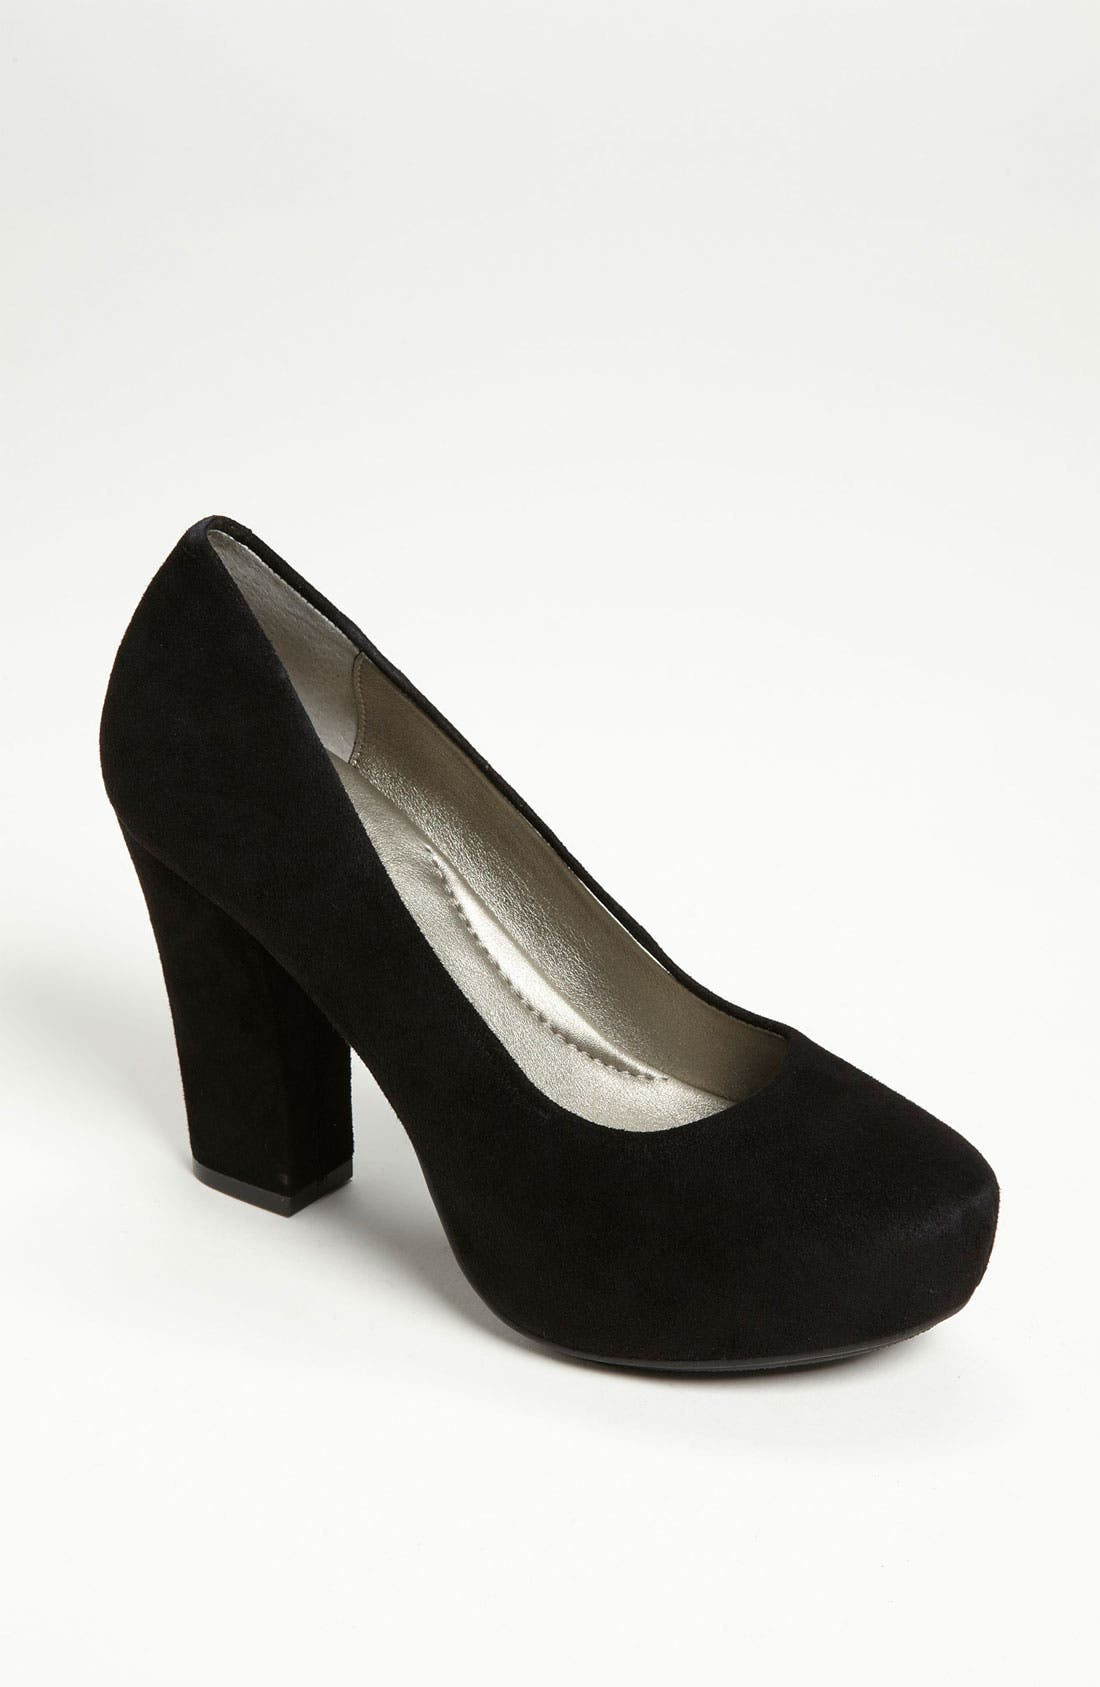 Main Image - Me Too 'Leeanna' Pump